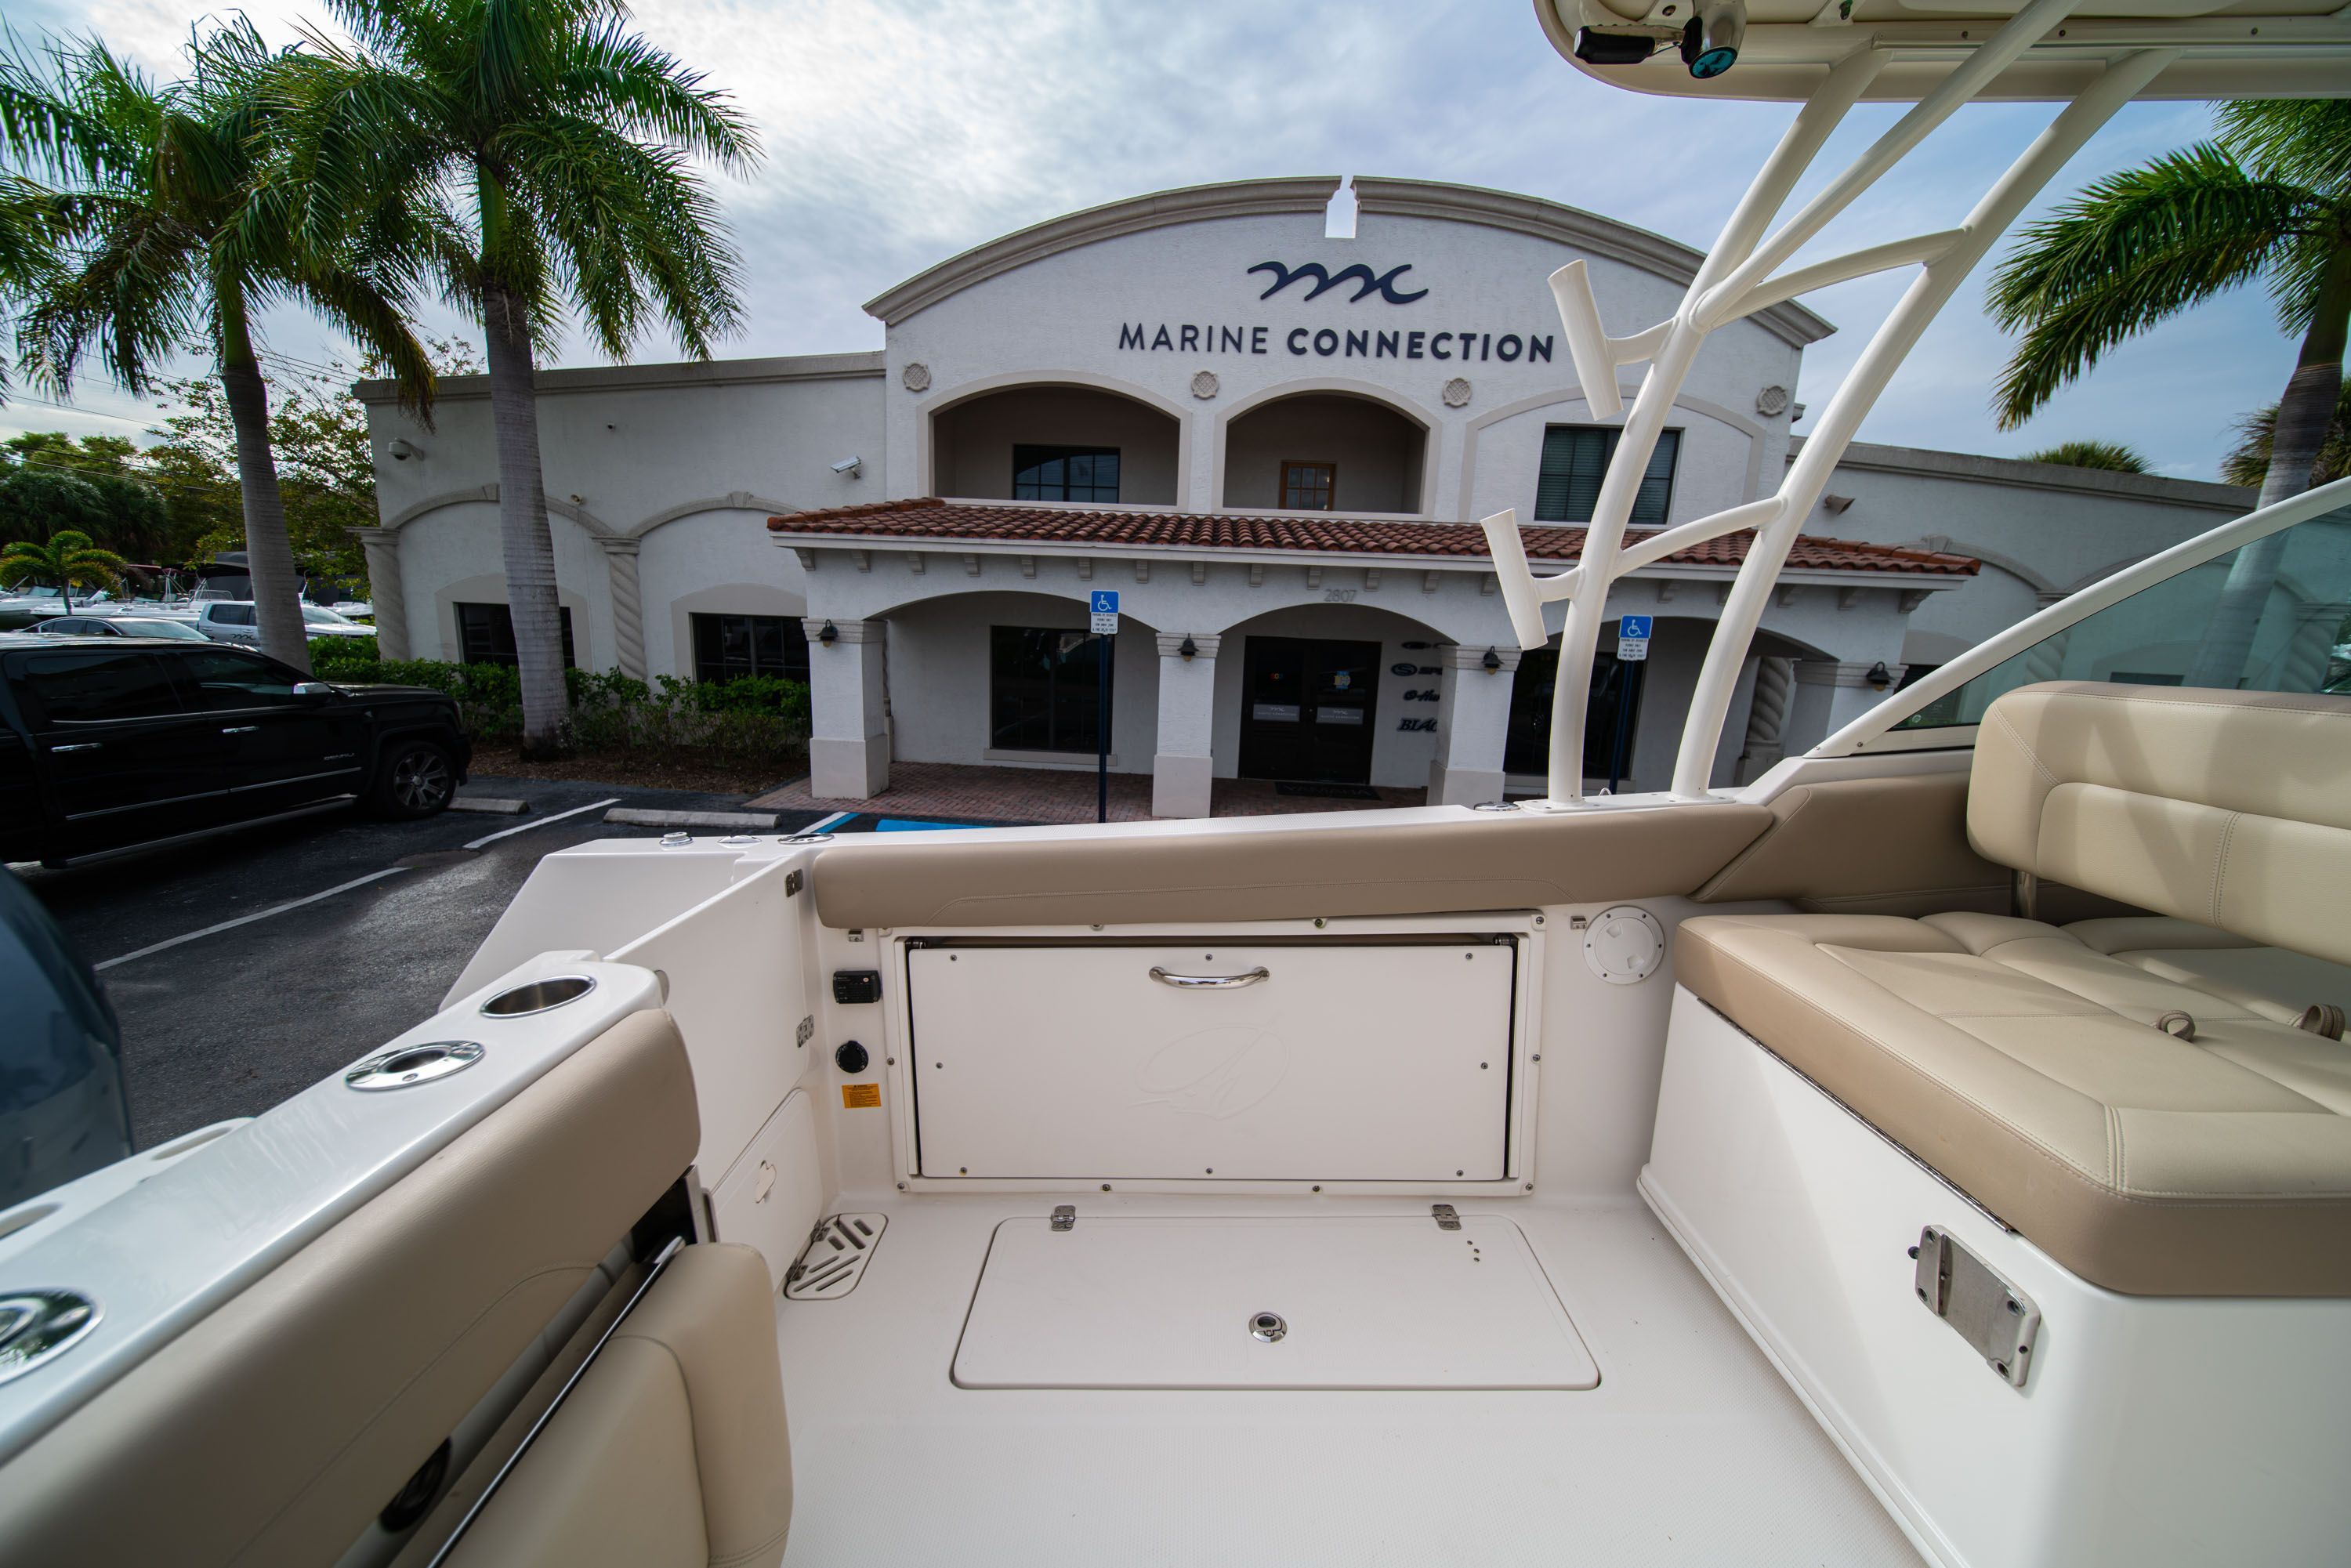 Thumbnail 22 for Used 2017 Sailfish 275 Dual Console boat for sale in West Palm Beach, FL